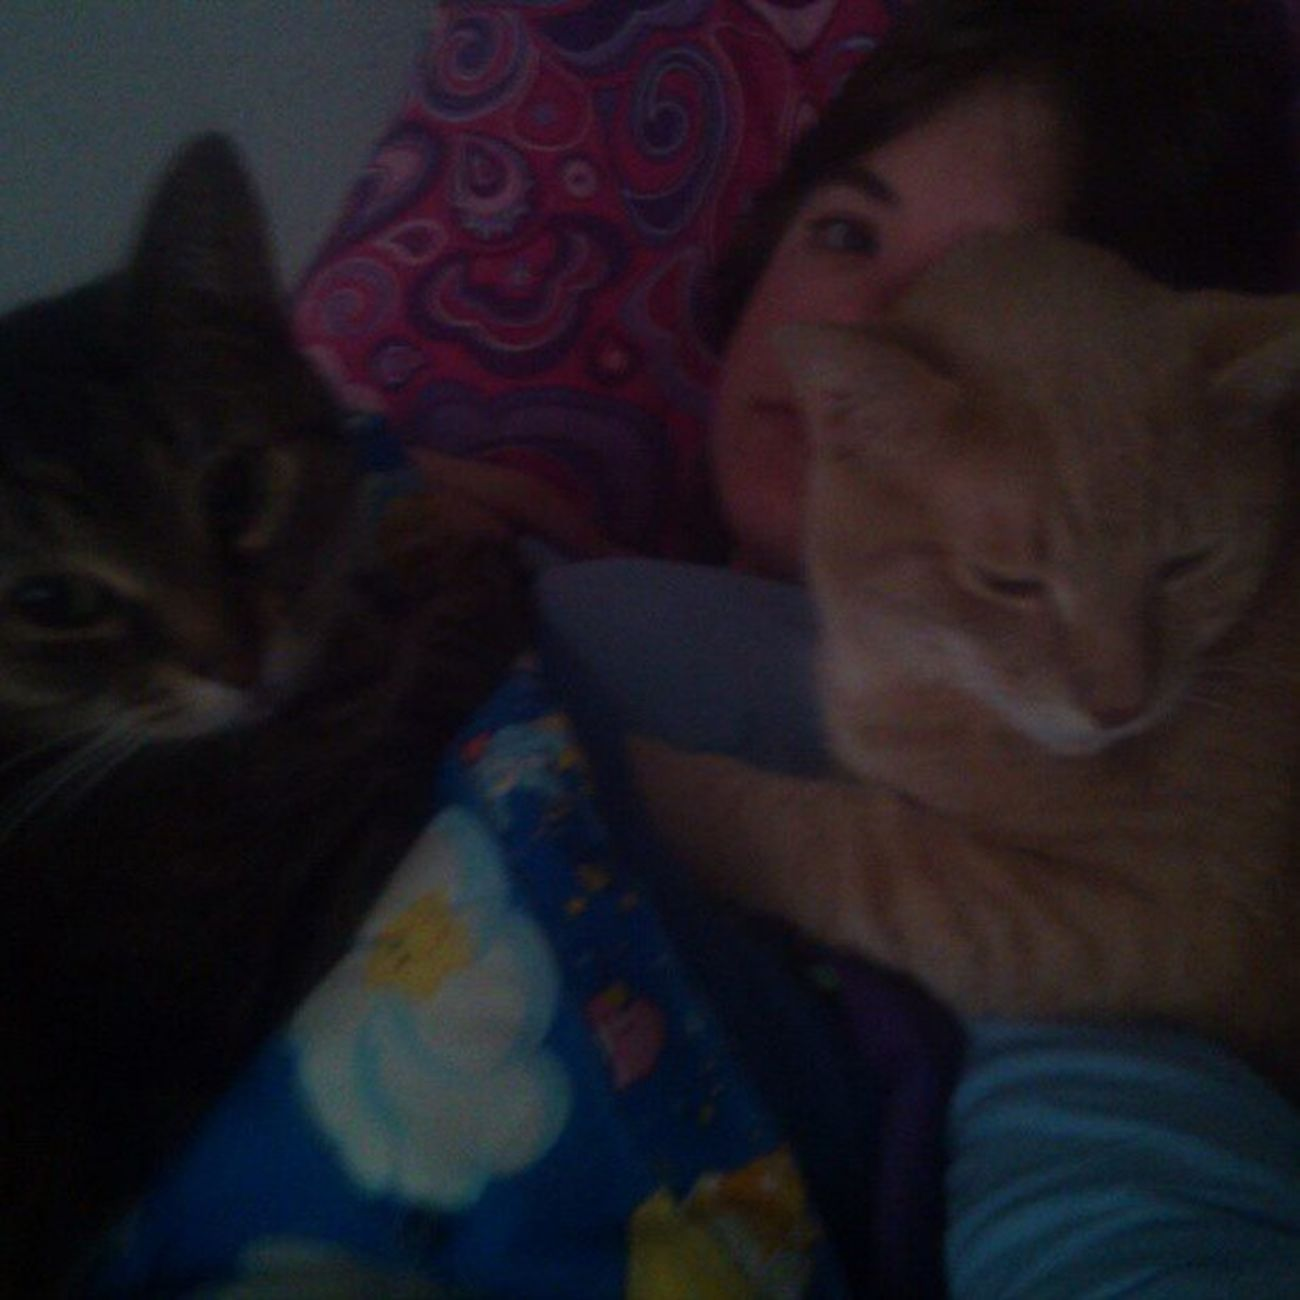 The morning smother has resumed. Meow Snugglebuddy Catlady